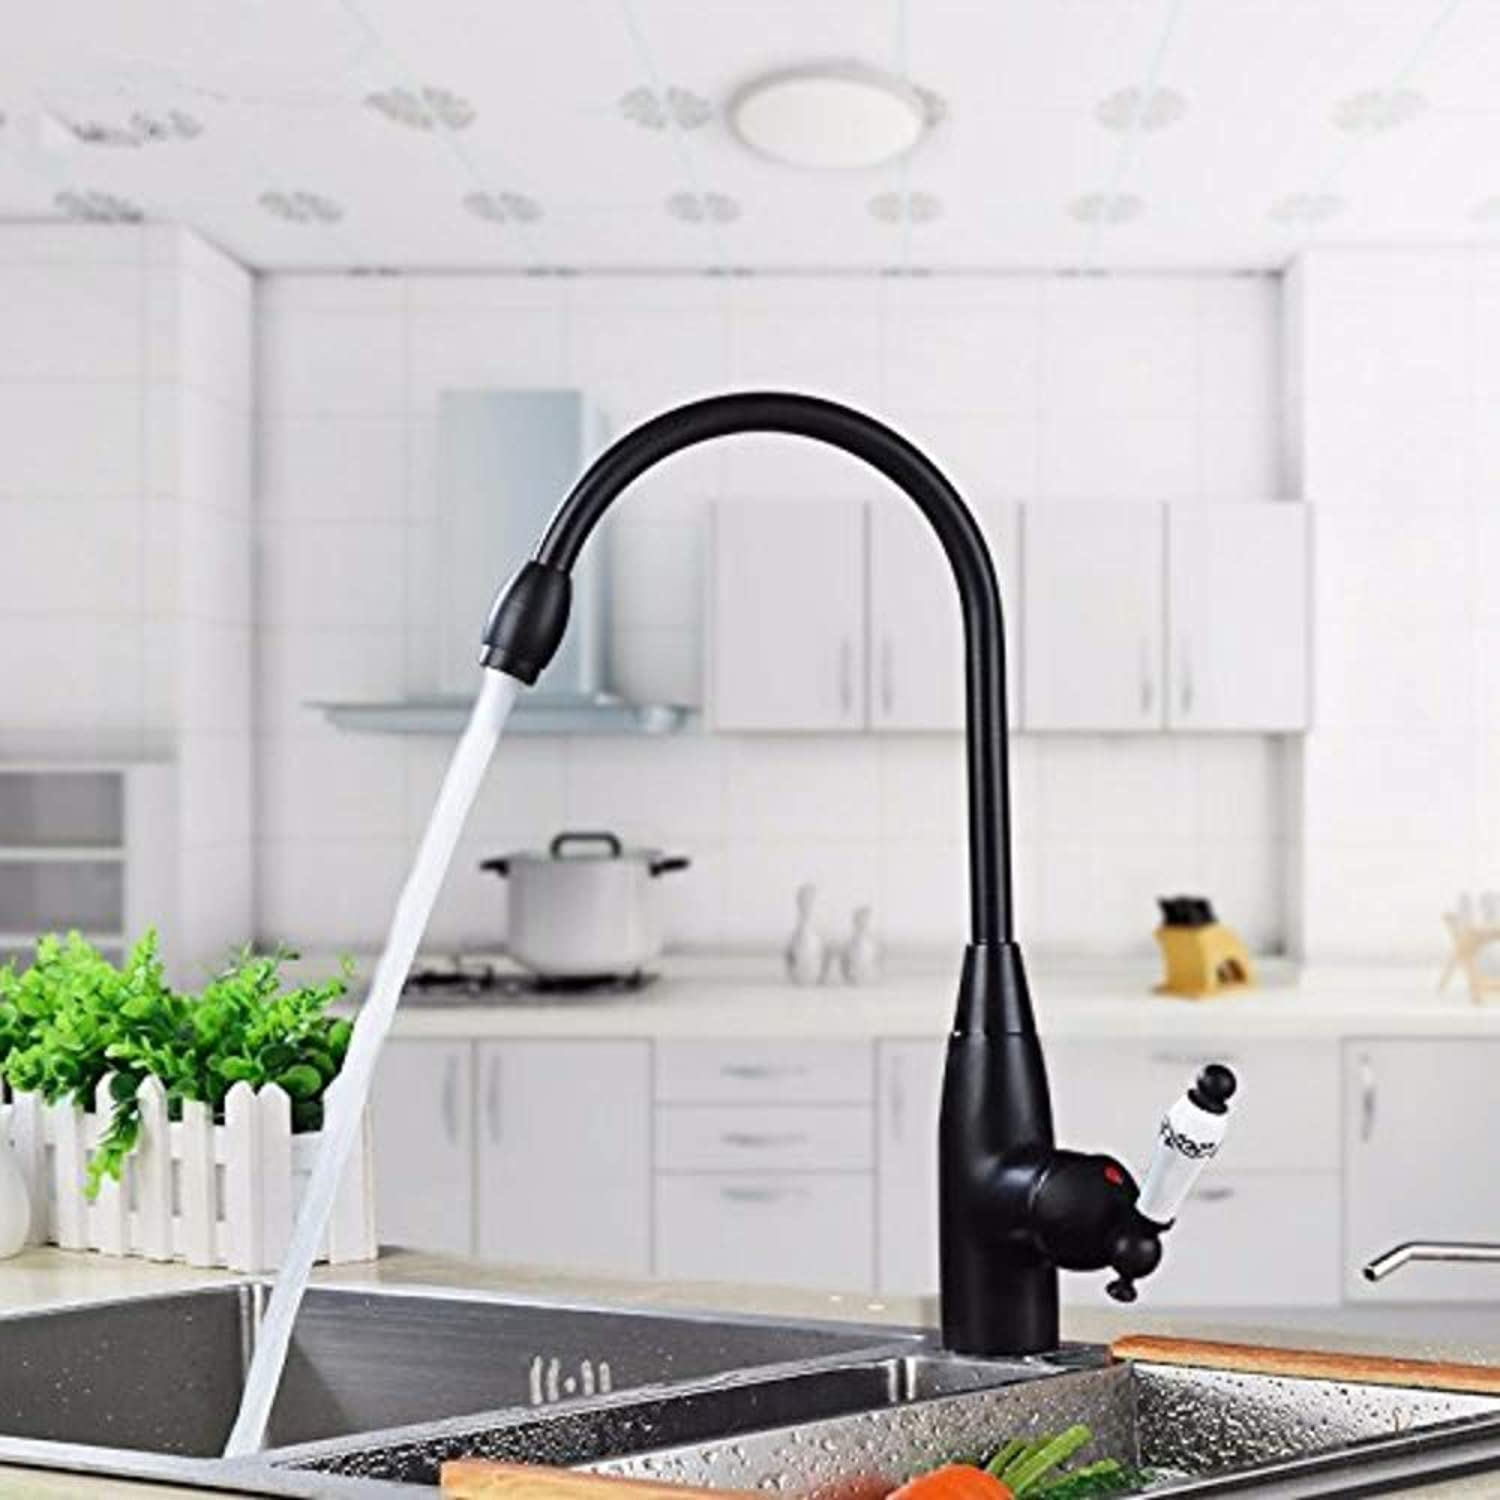 Water Tap Black Hot and Cold Water Can Be redated Modern Taps Kitchen Brass Faucet Bathroom Sink Basin Waterfall Tap Mixer Water Washroom Bath Tub Shower